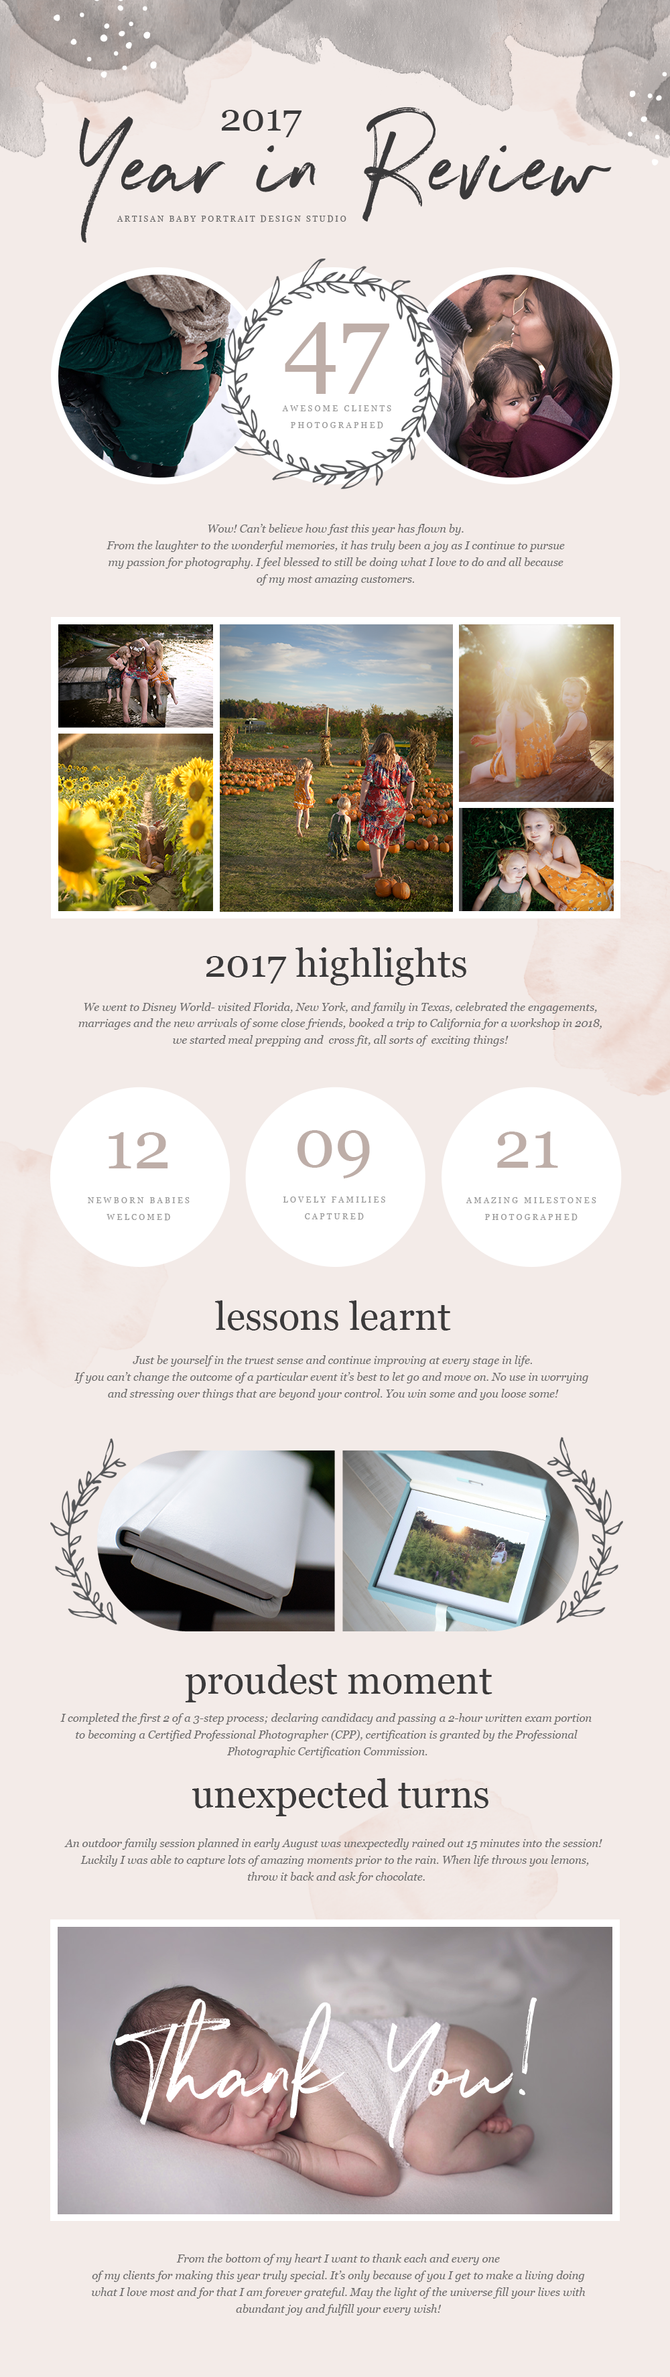 2017 Year In Review- HUDSON, MA. BABY PHOTOGRAPHY